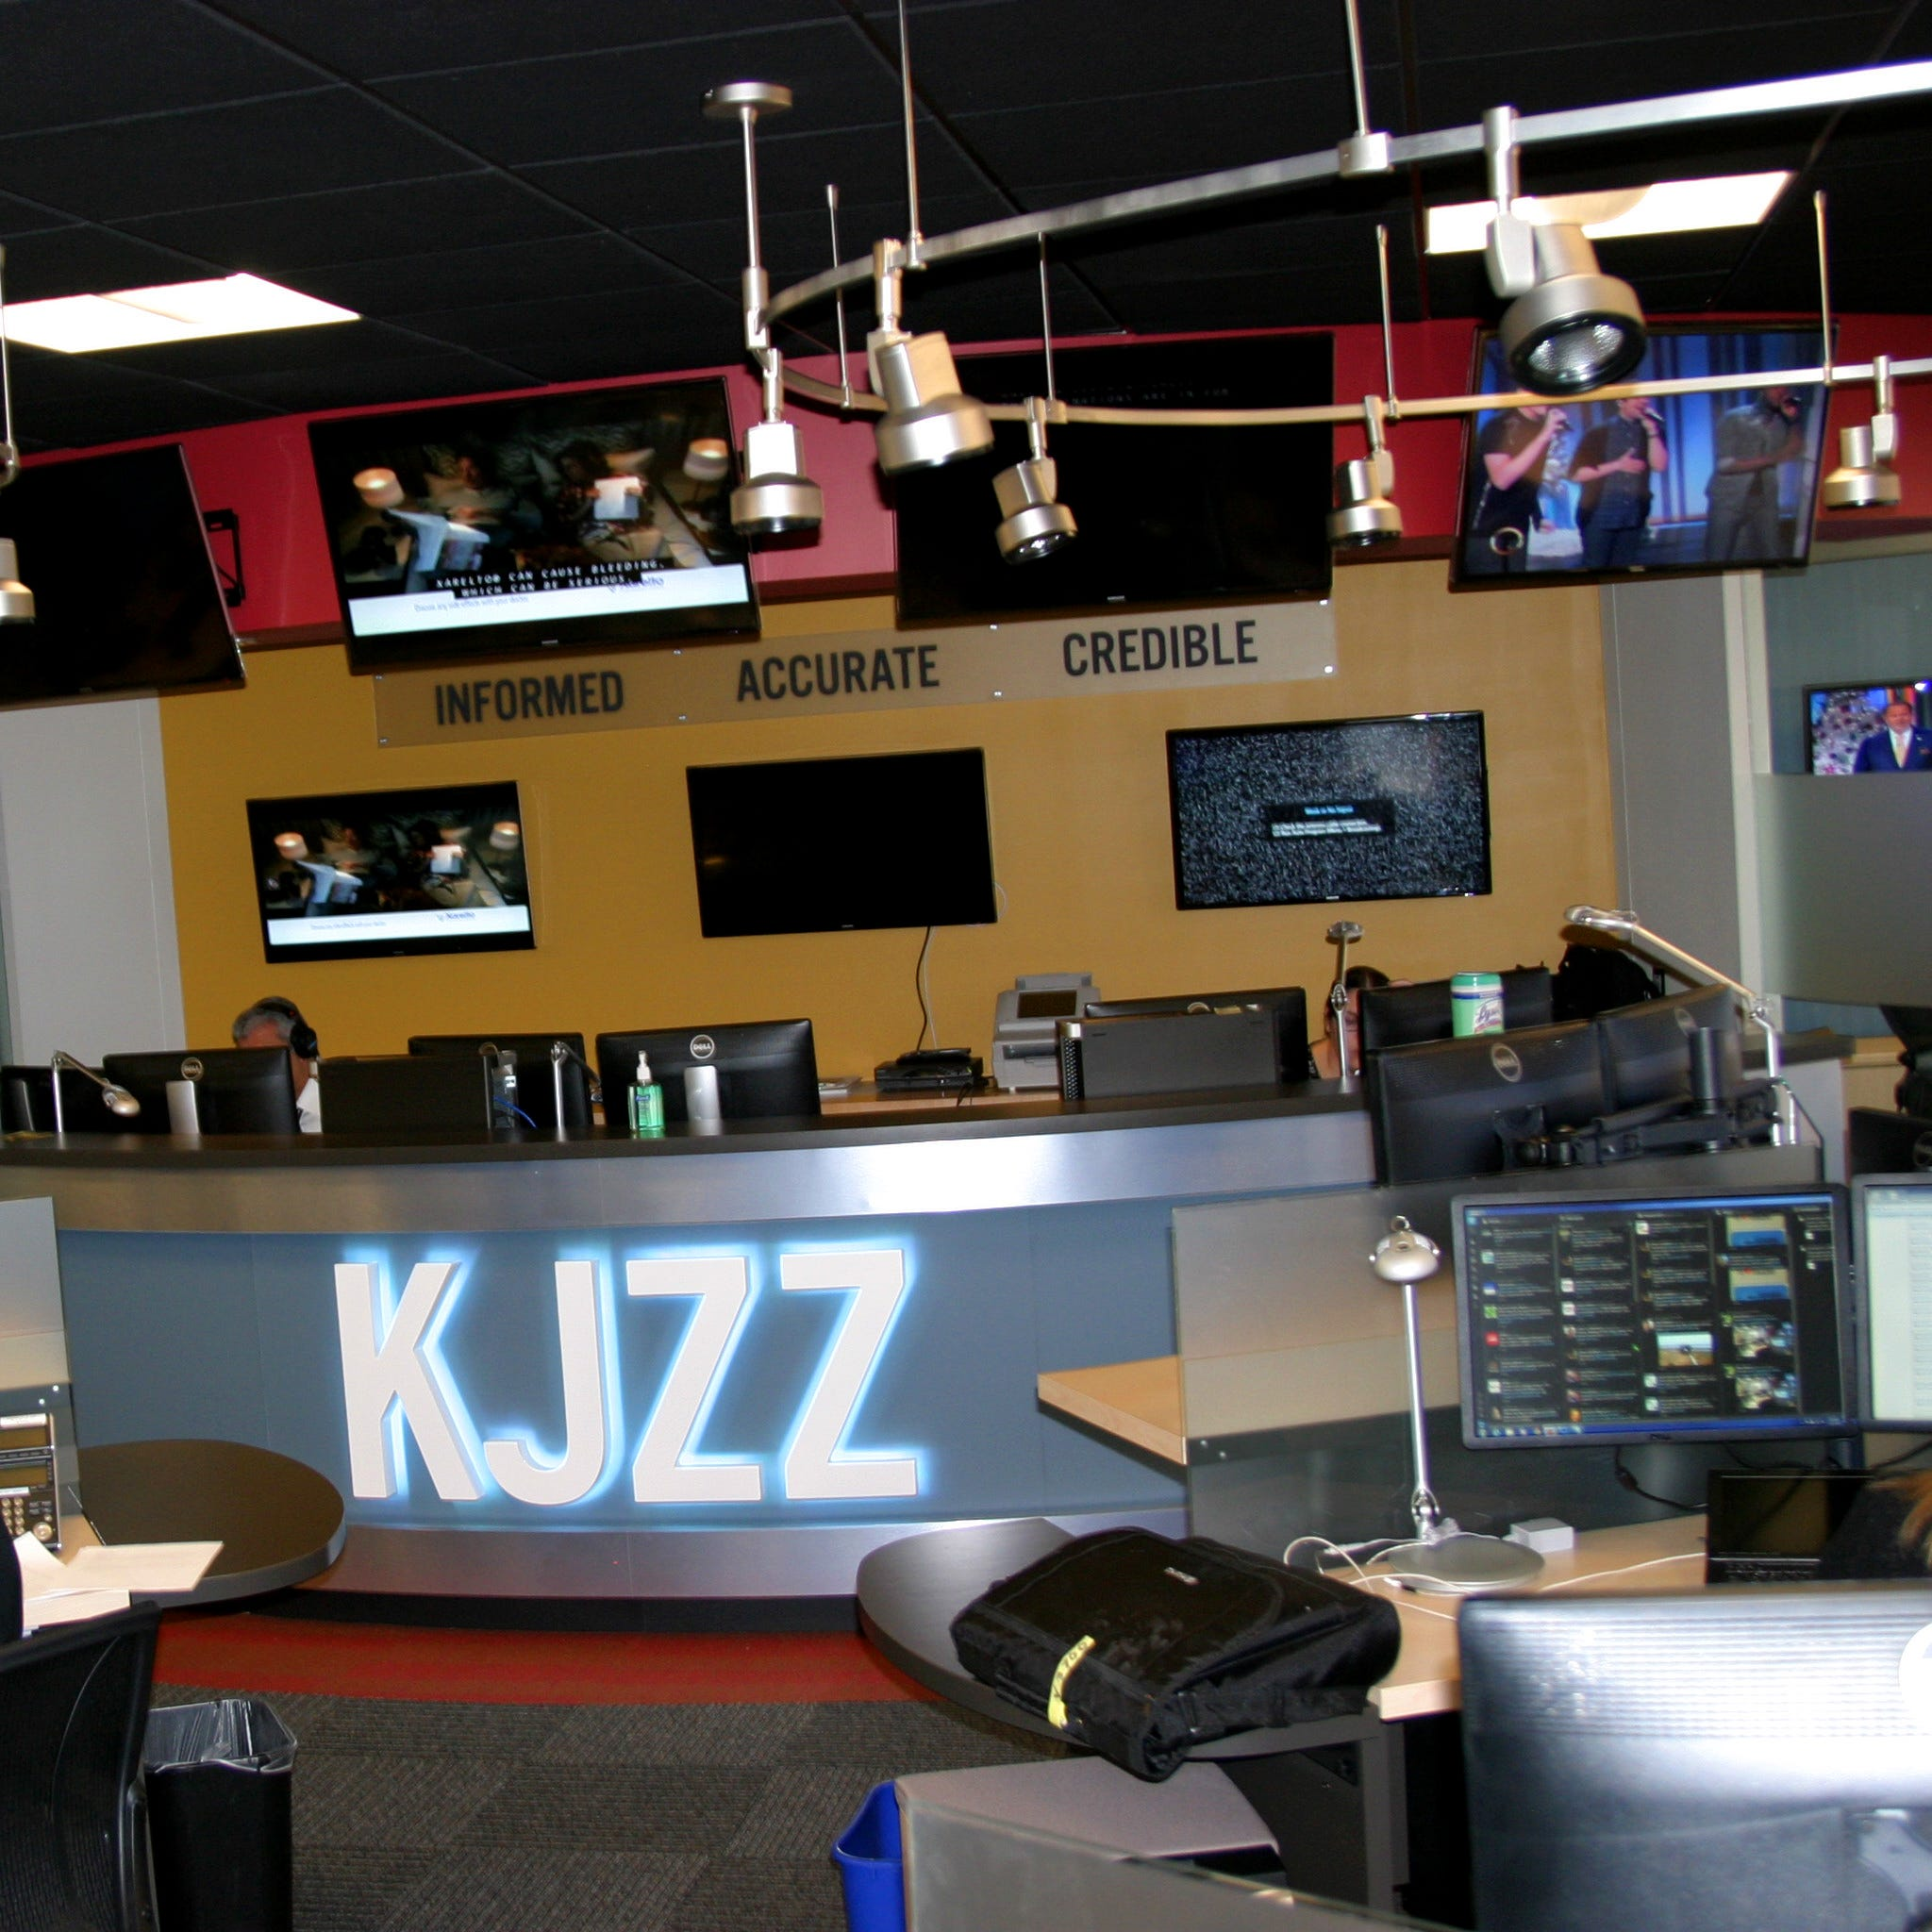 KJZZ executive demoted after workplace investigation finds 'thoughtless, sexist' behavior